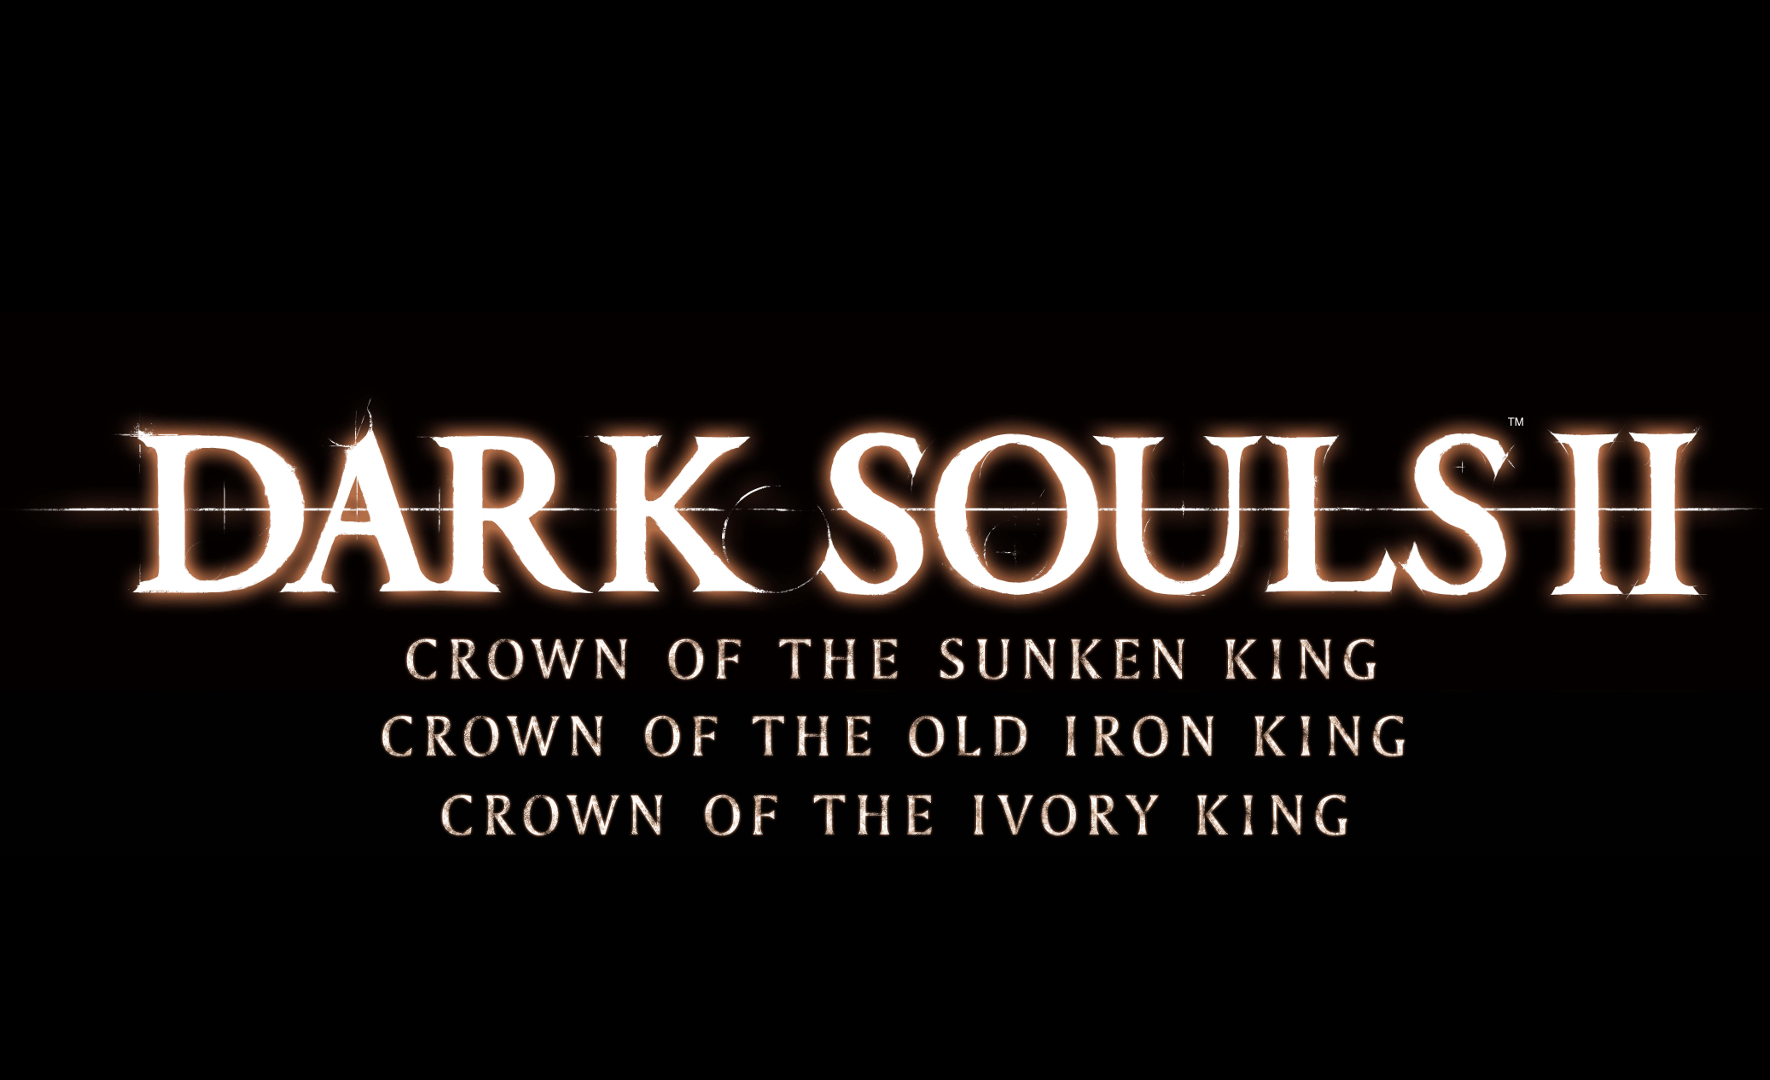 Dark Souls 2 - The Lost Crowns